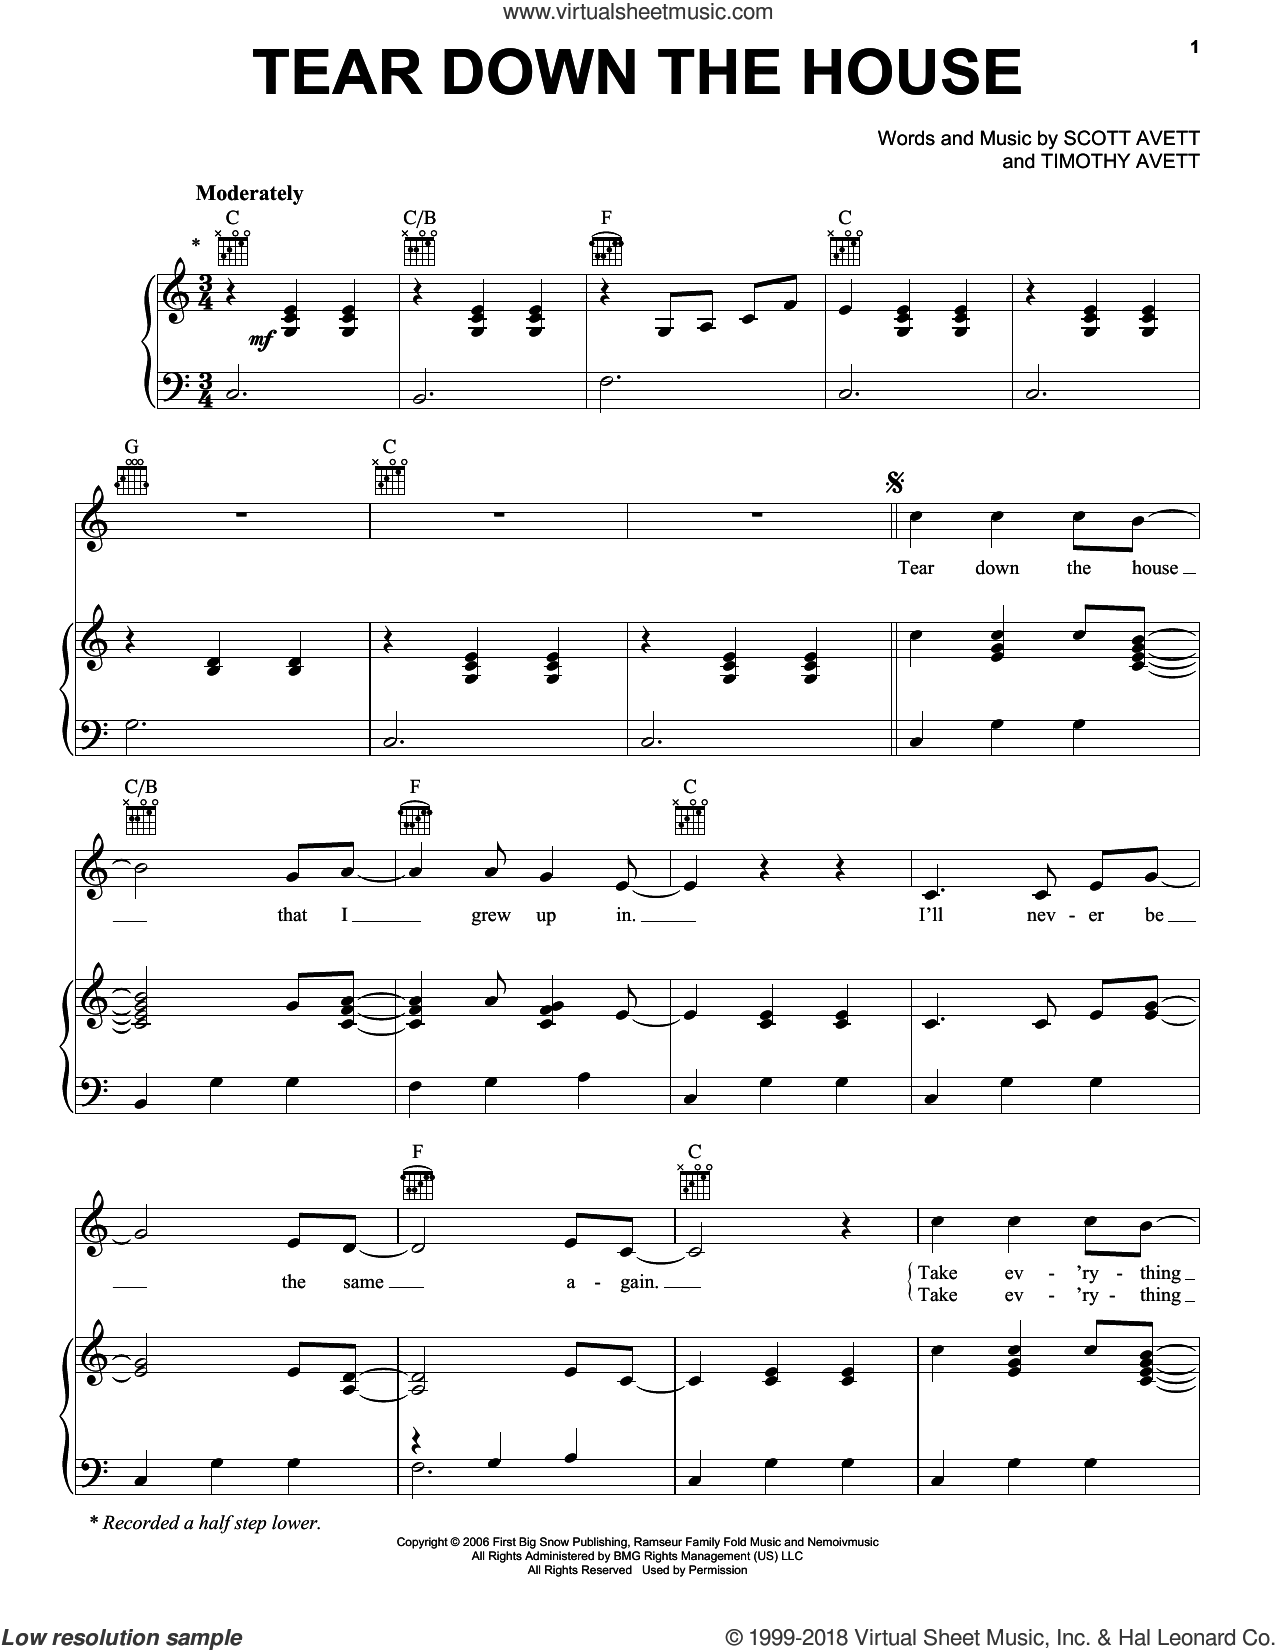 Tear Down The House sheet music for voice, piano or guitar by Timothy Avett. Score Image Preview.